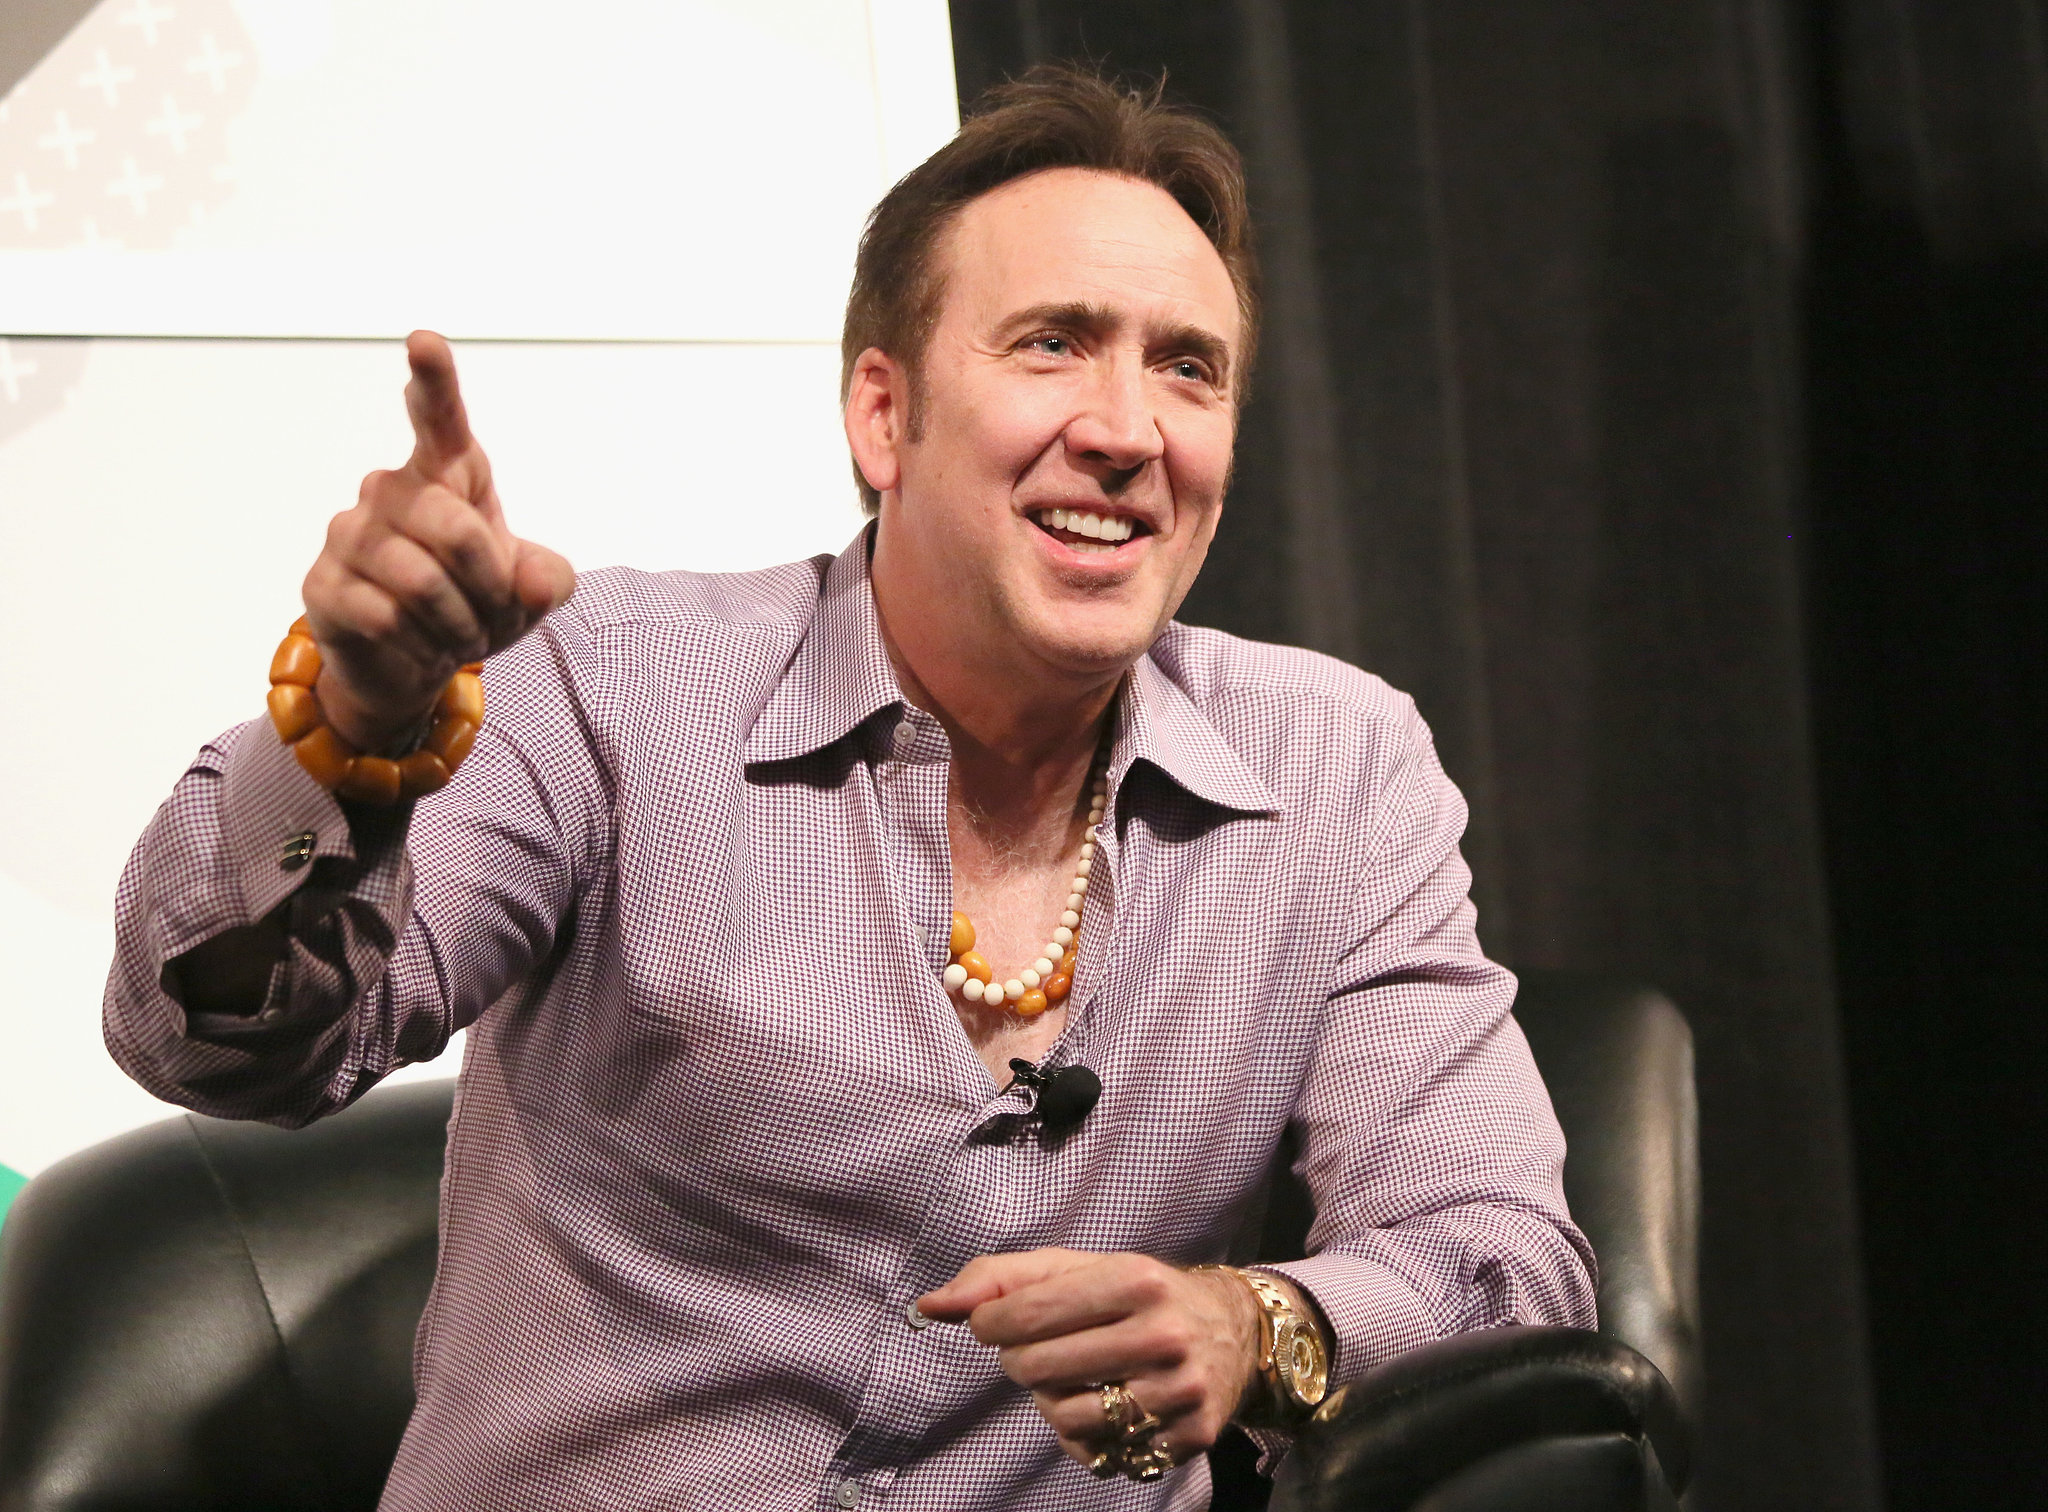 On Monday, Nicolas Cage got animated on stage.